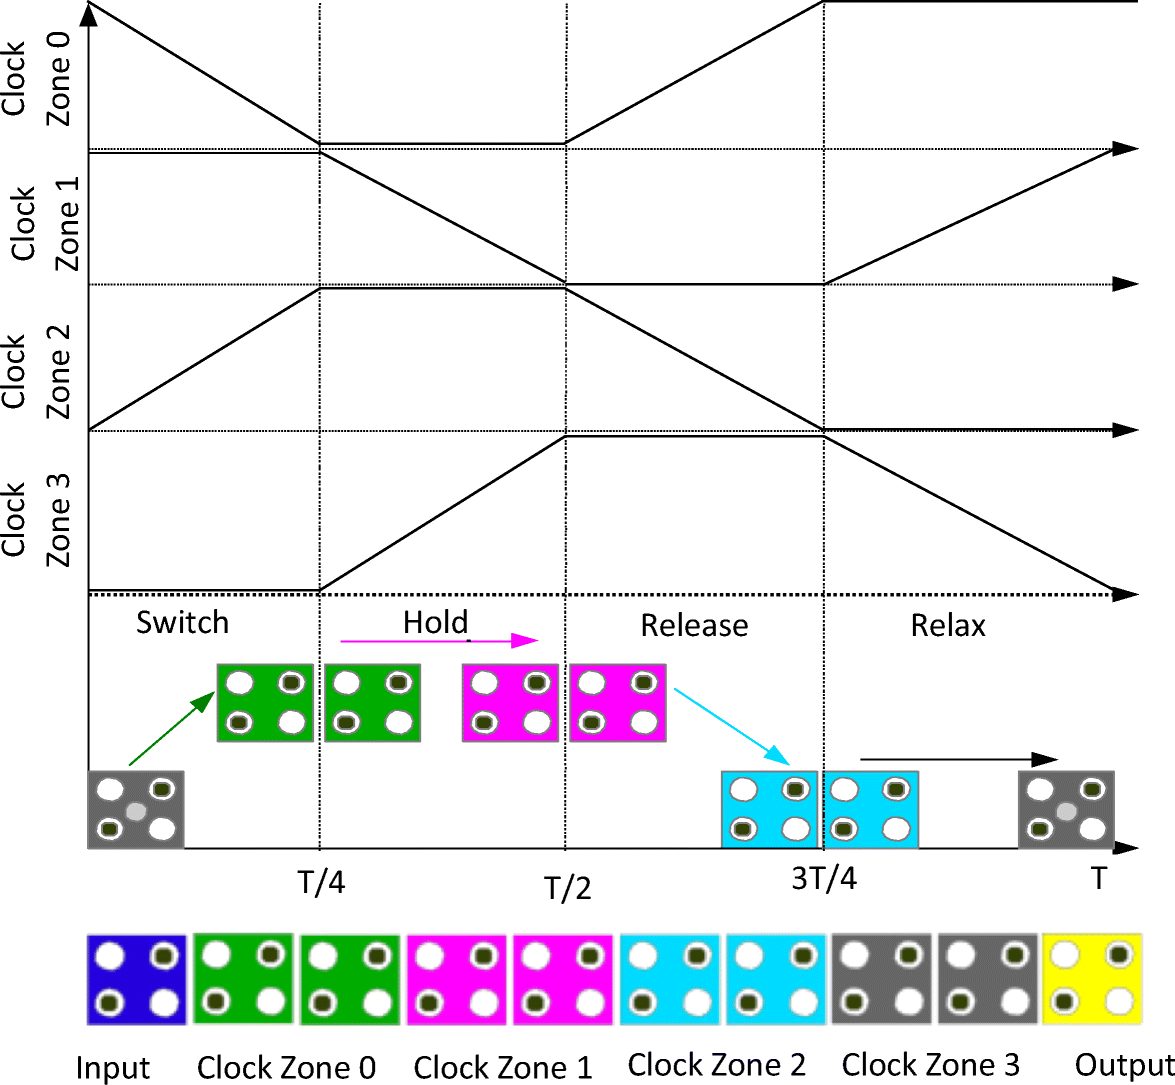 Fault Tolerant Design Of A Shift Register At The Nanoscale Based On Figure 8 4x1 Multiplexer With 2x4 Decoder Selector Block Diagram Fig 2